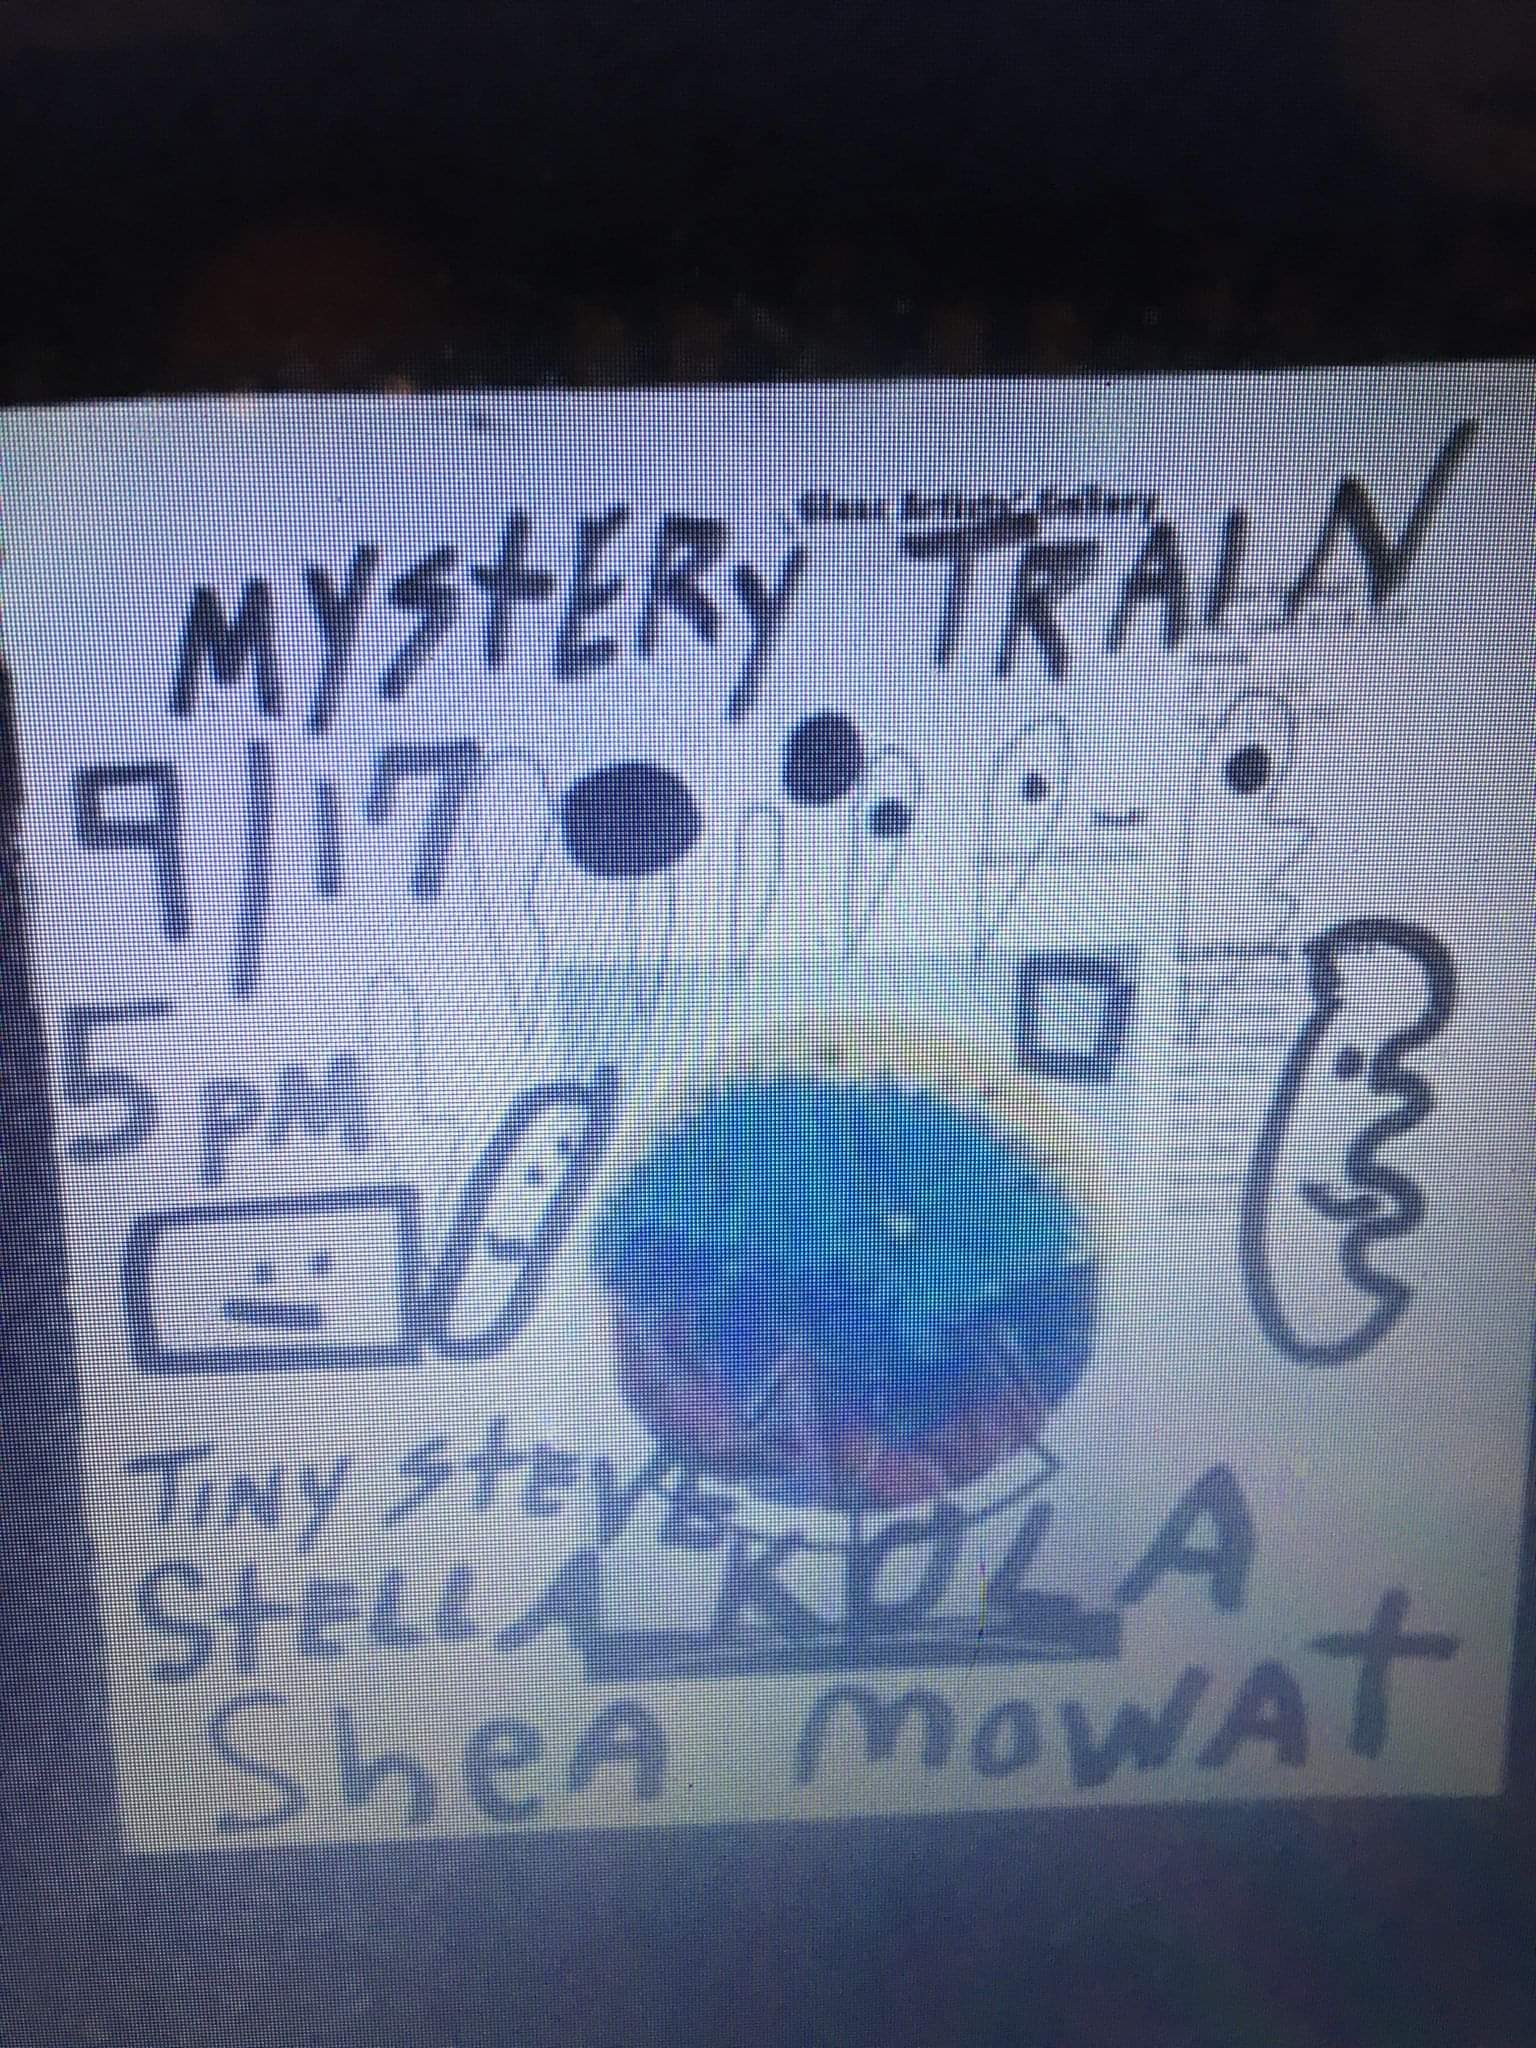 Crude and silly drawings of shapes with faces in sharpie next to the band information listed in the event